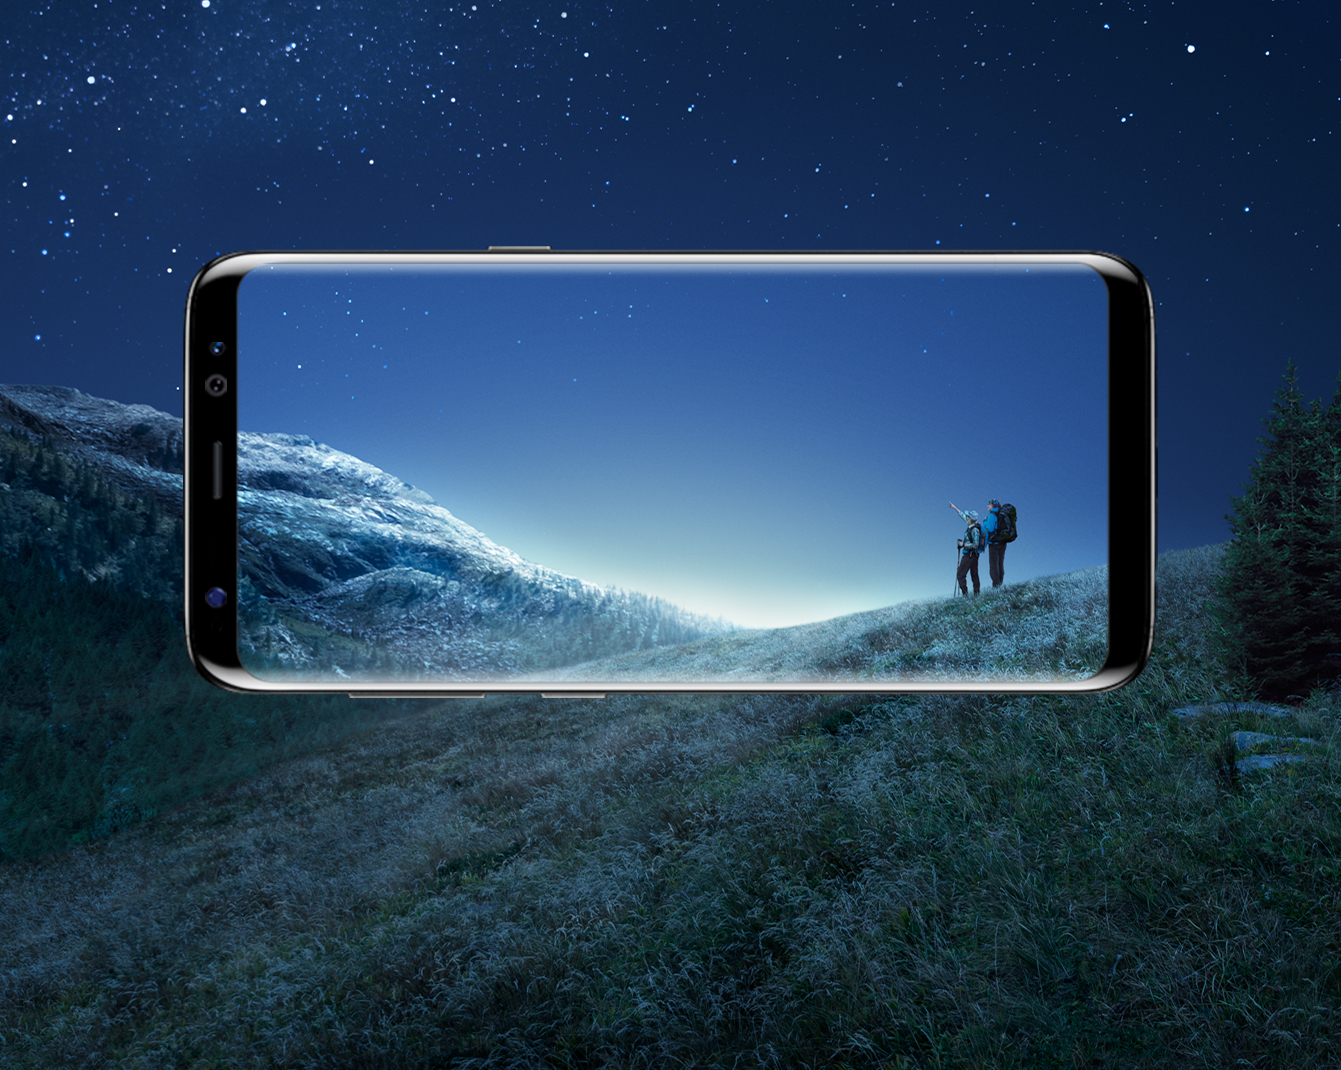 Galaxy S8 Tech Press Weighs In On Galaxy S8